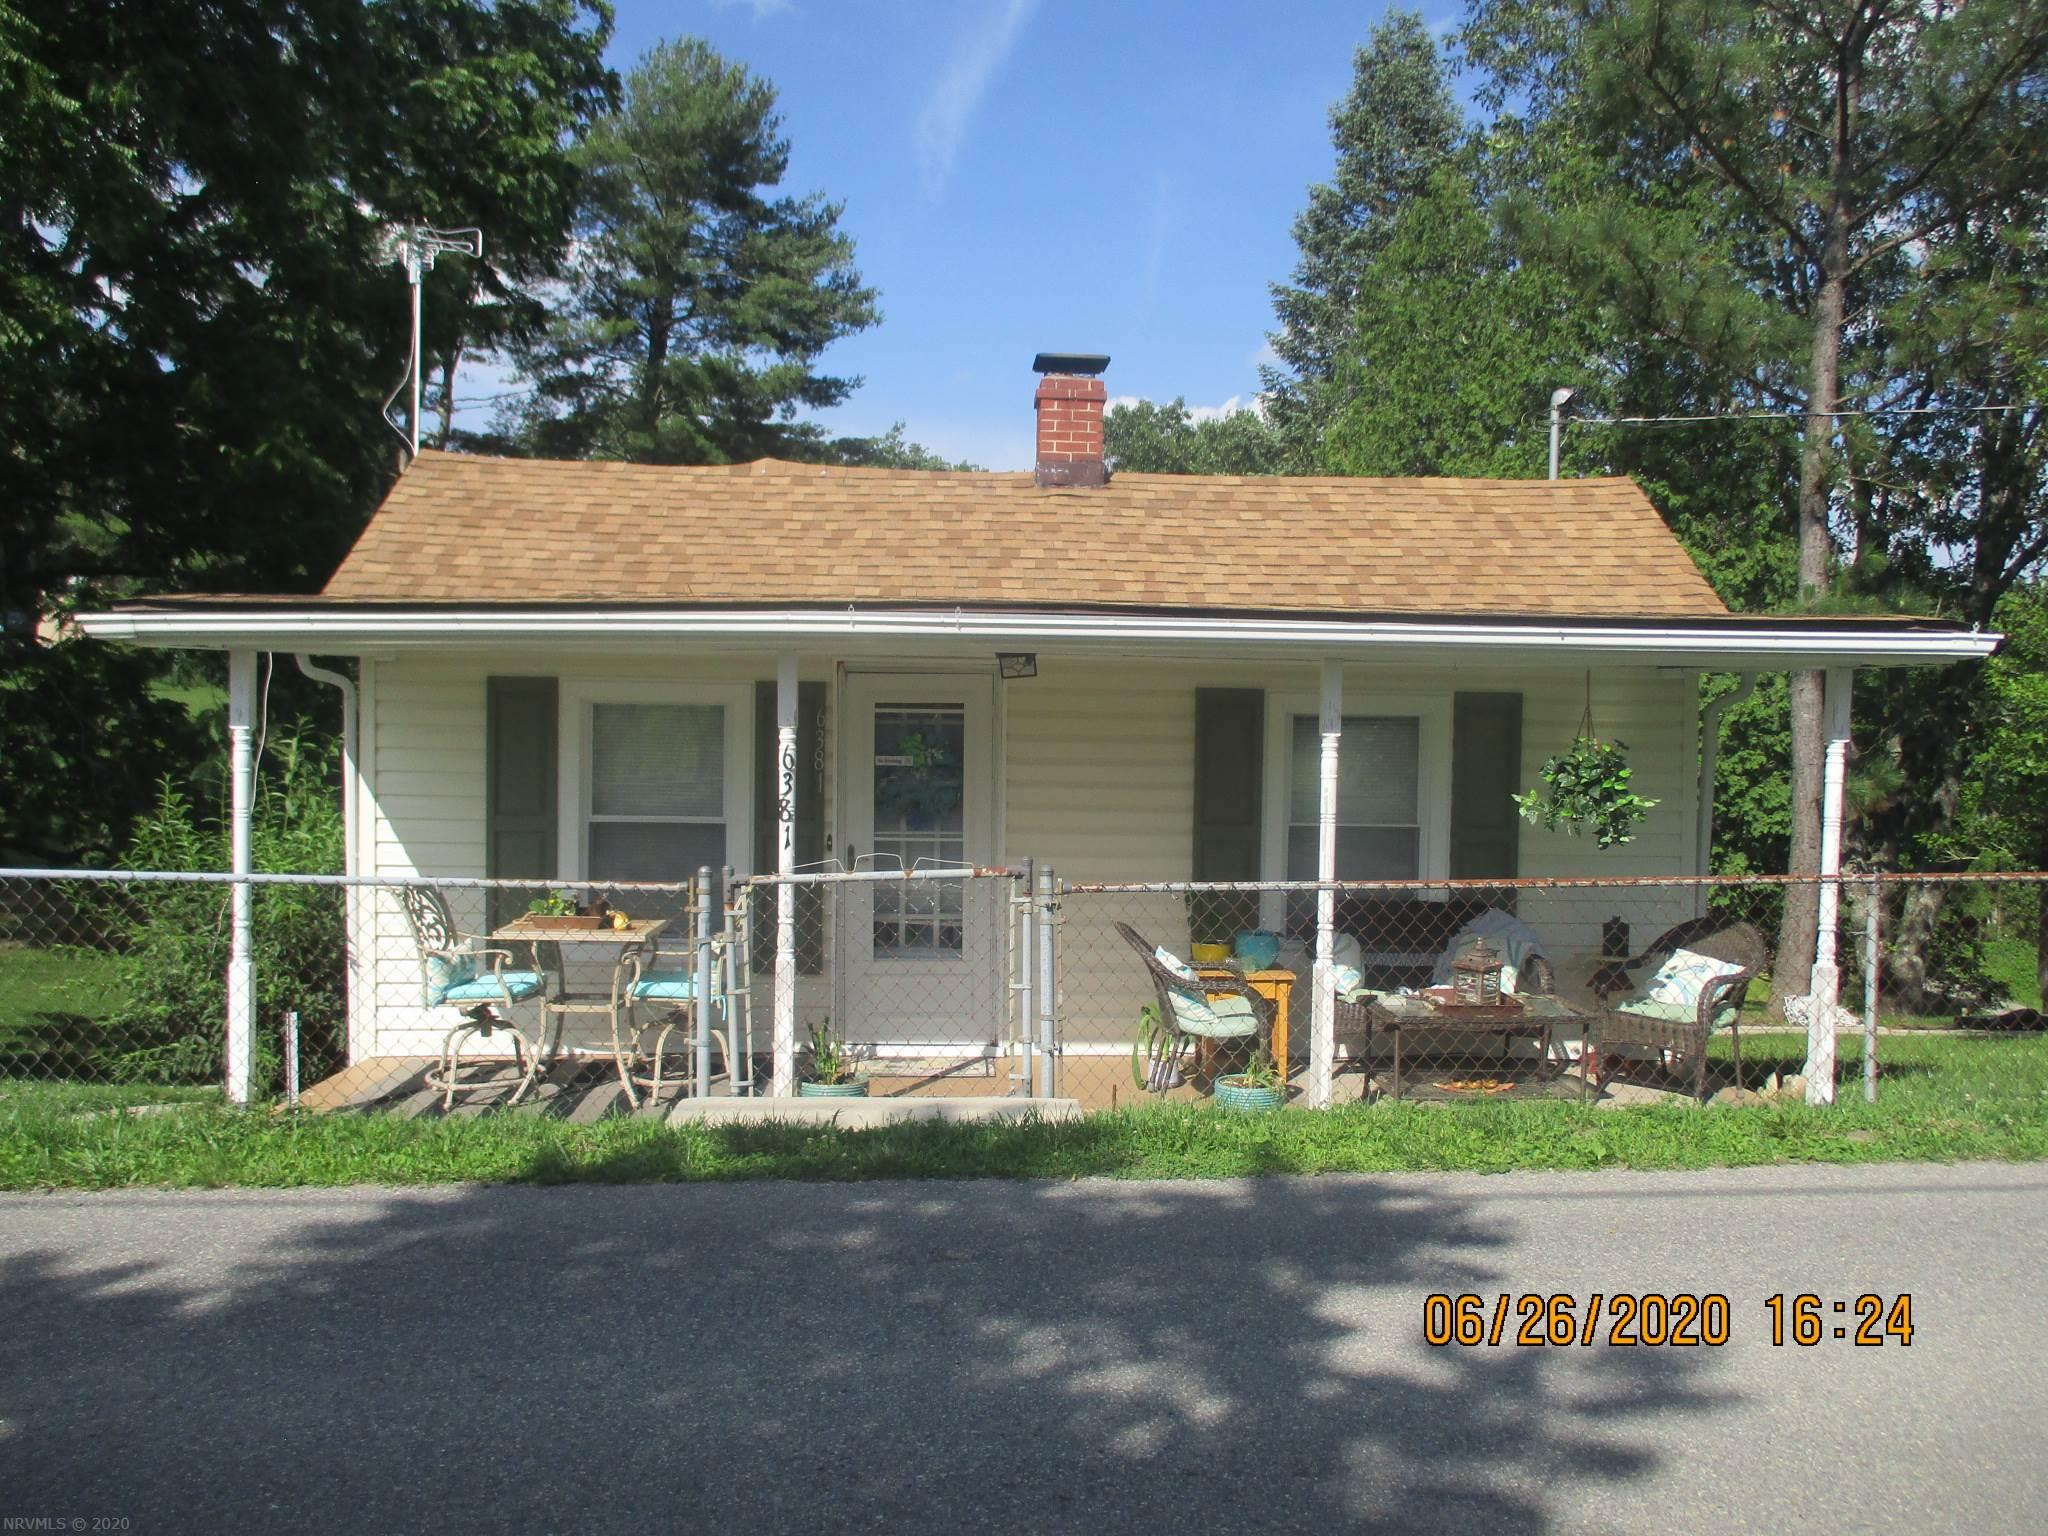 Step inside this delightful, cottage style home and you will fall in love.  The owner has totally transformed this home into a relaxing retreat.  And wait until you see the kitchen and dining area!  Three bedrooms, two baths, a living room, den and more are neatly situated in this lovely home. Newer windows and the roof is in GREAT condition. Vinyl siding and so much more! Quiet, country setting with pastoral views.  Don't miss your opportunity to own this uniquely designed home.  Call and schedule a showing today!